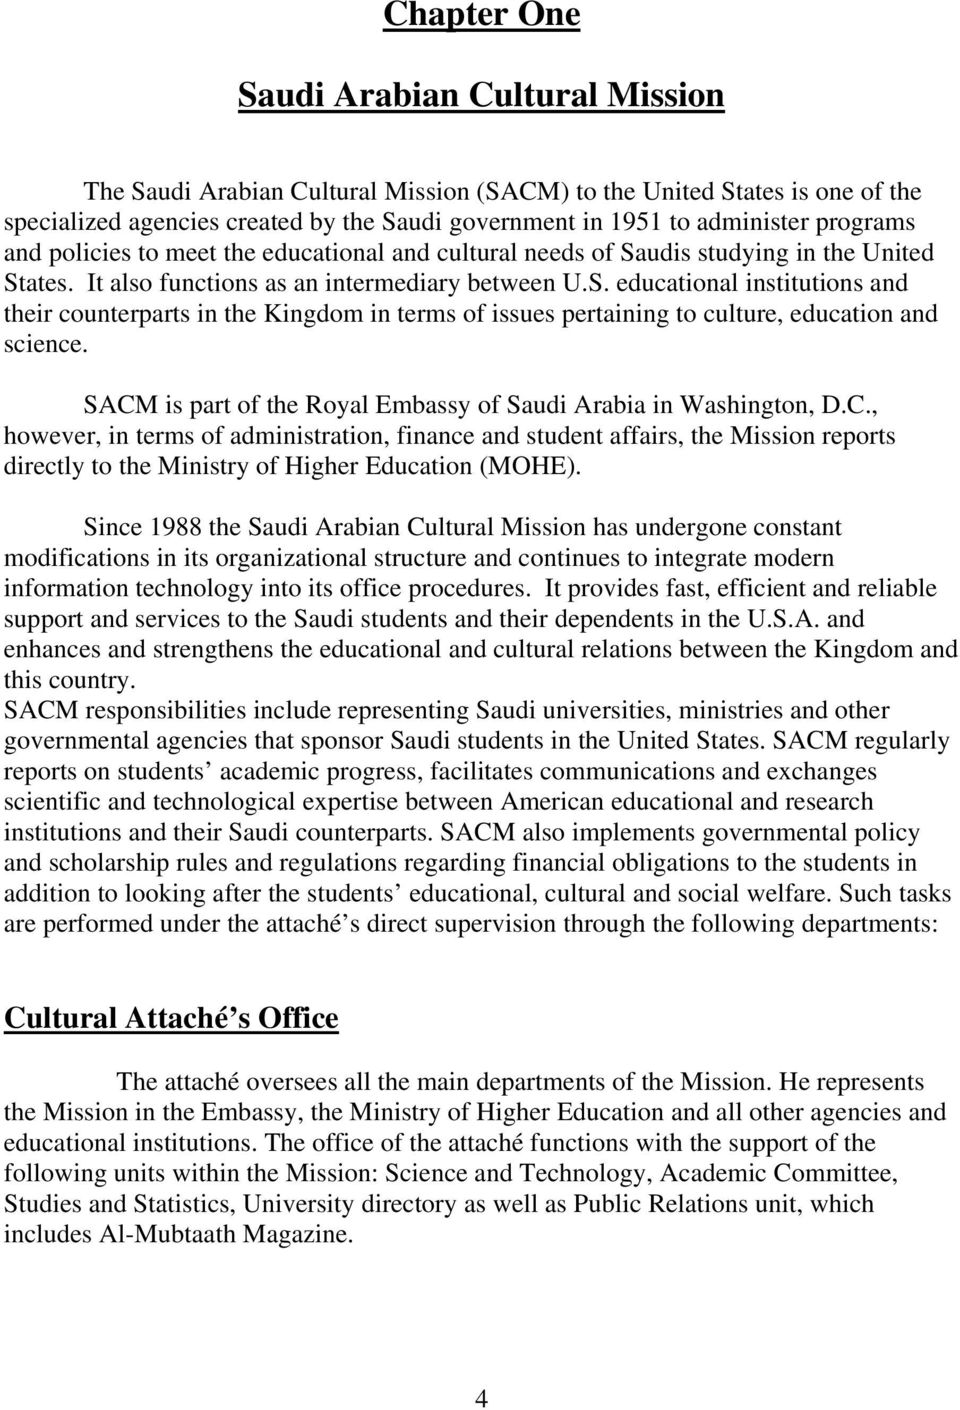 SACM is part of the Royal Embassy of Saudi Arabia in Washington, D.C., however, in terms of administration, finance and student affairs, the Mission reports directly to the Ministry of Higher Education (MOHE).